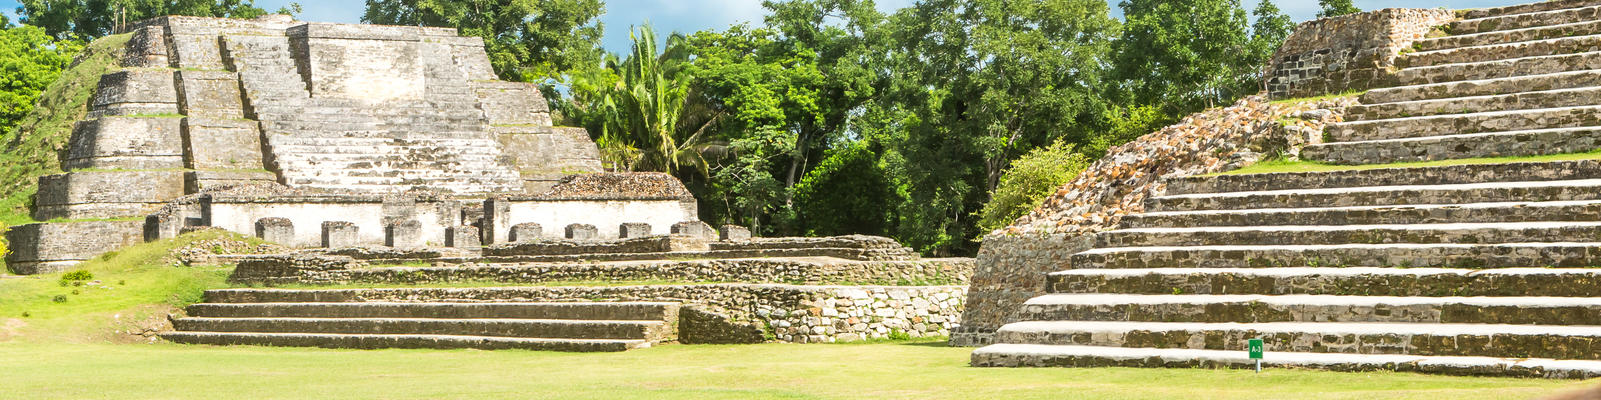 Altun Ha Temple, Belize, Central America (Photo: Marcelo Alex/Shutterstock)